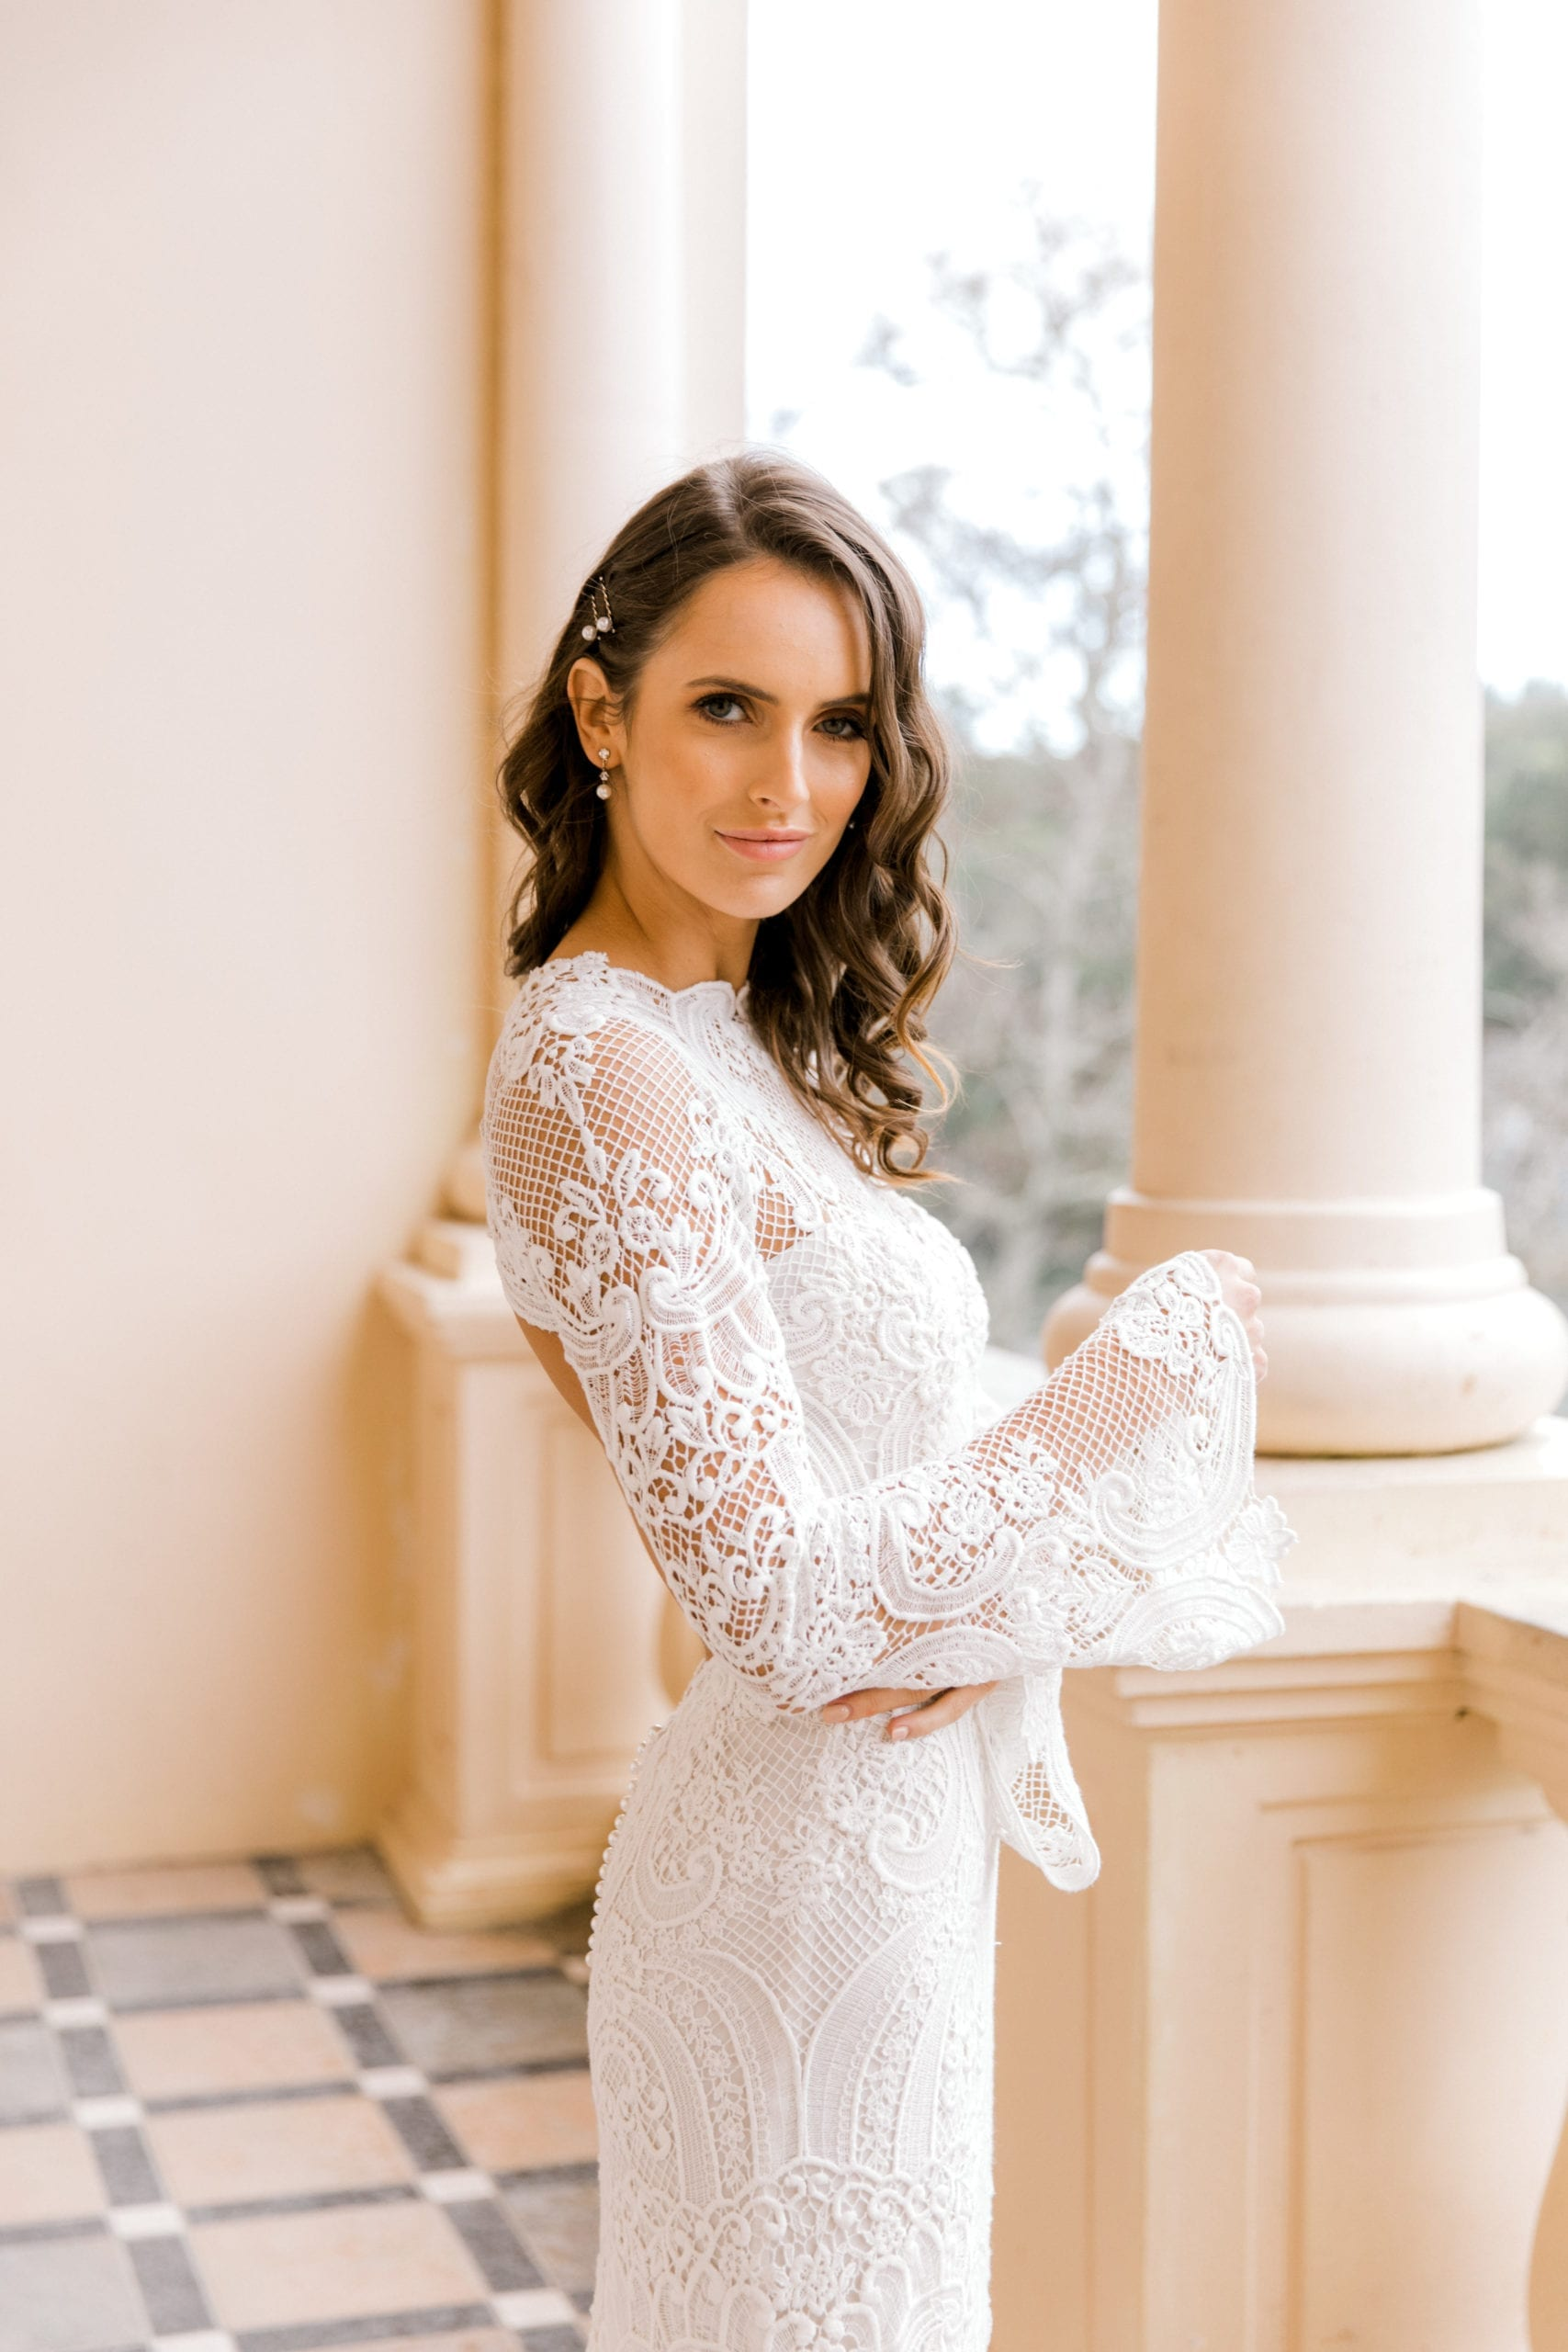 Model wearing Vinka Design Sabine Wedding Dress, a French Crochet Lace Wedding Gown on an open balcony with columns posing to the side